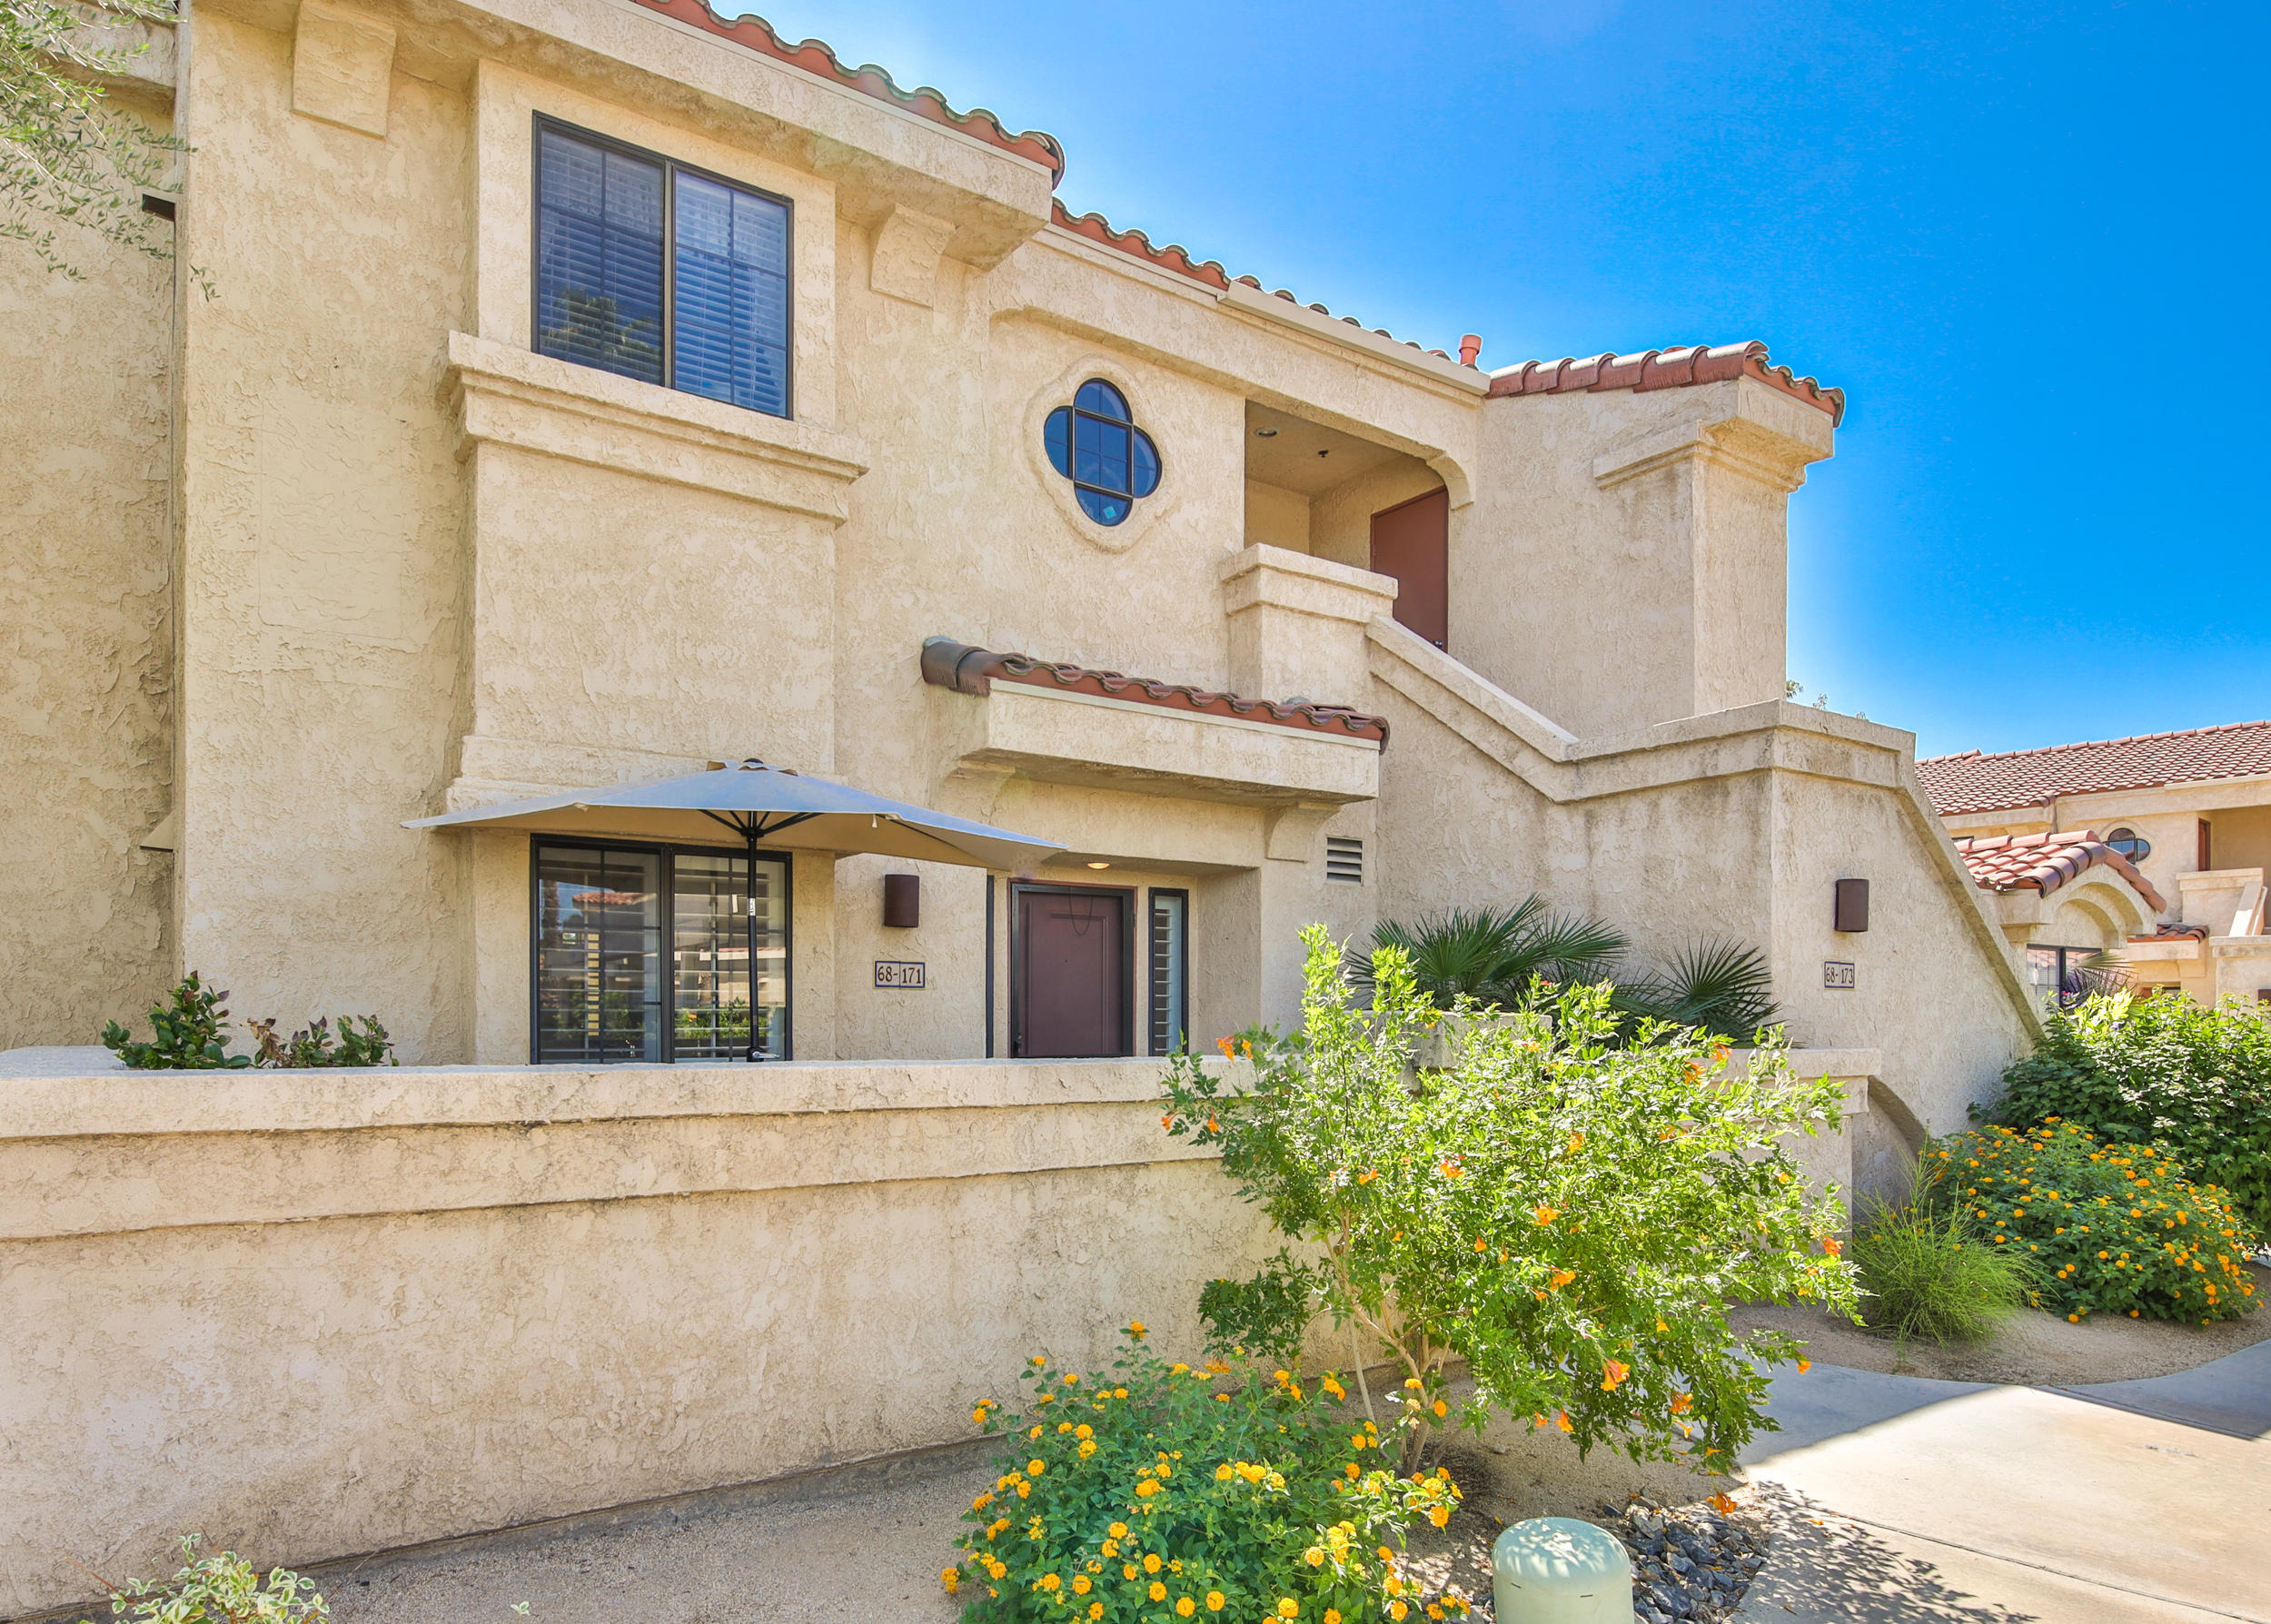 68171 Lakeland Drive, Cathedral City, California 92234, 2 Bedrooms Bedrooms, ,2 BathroomsBathrooms,Residential,Sold,68171 Lakeland Drive,219030584